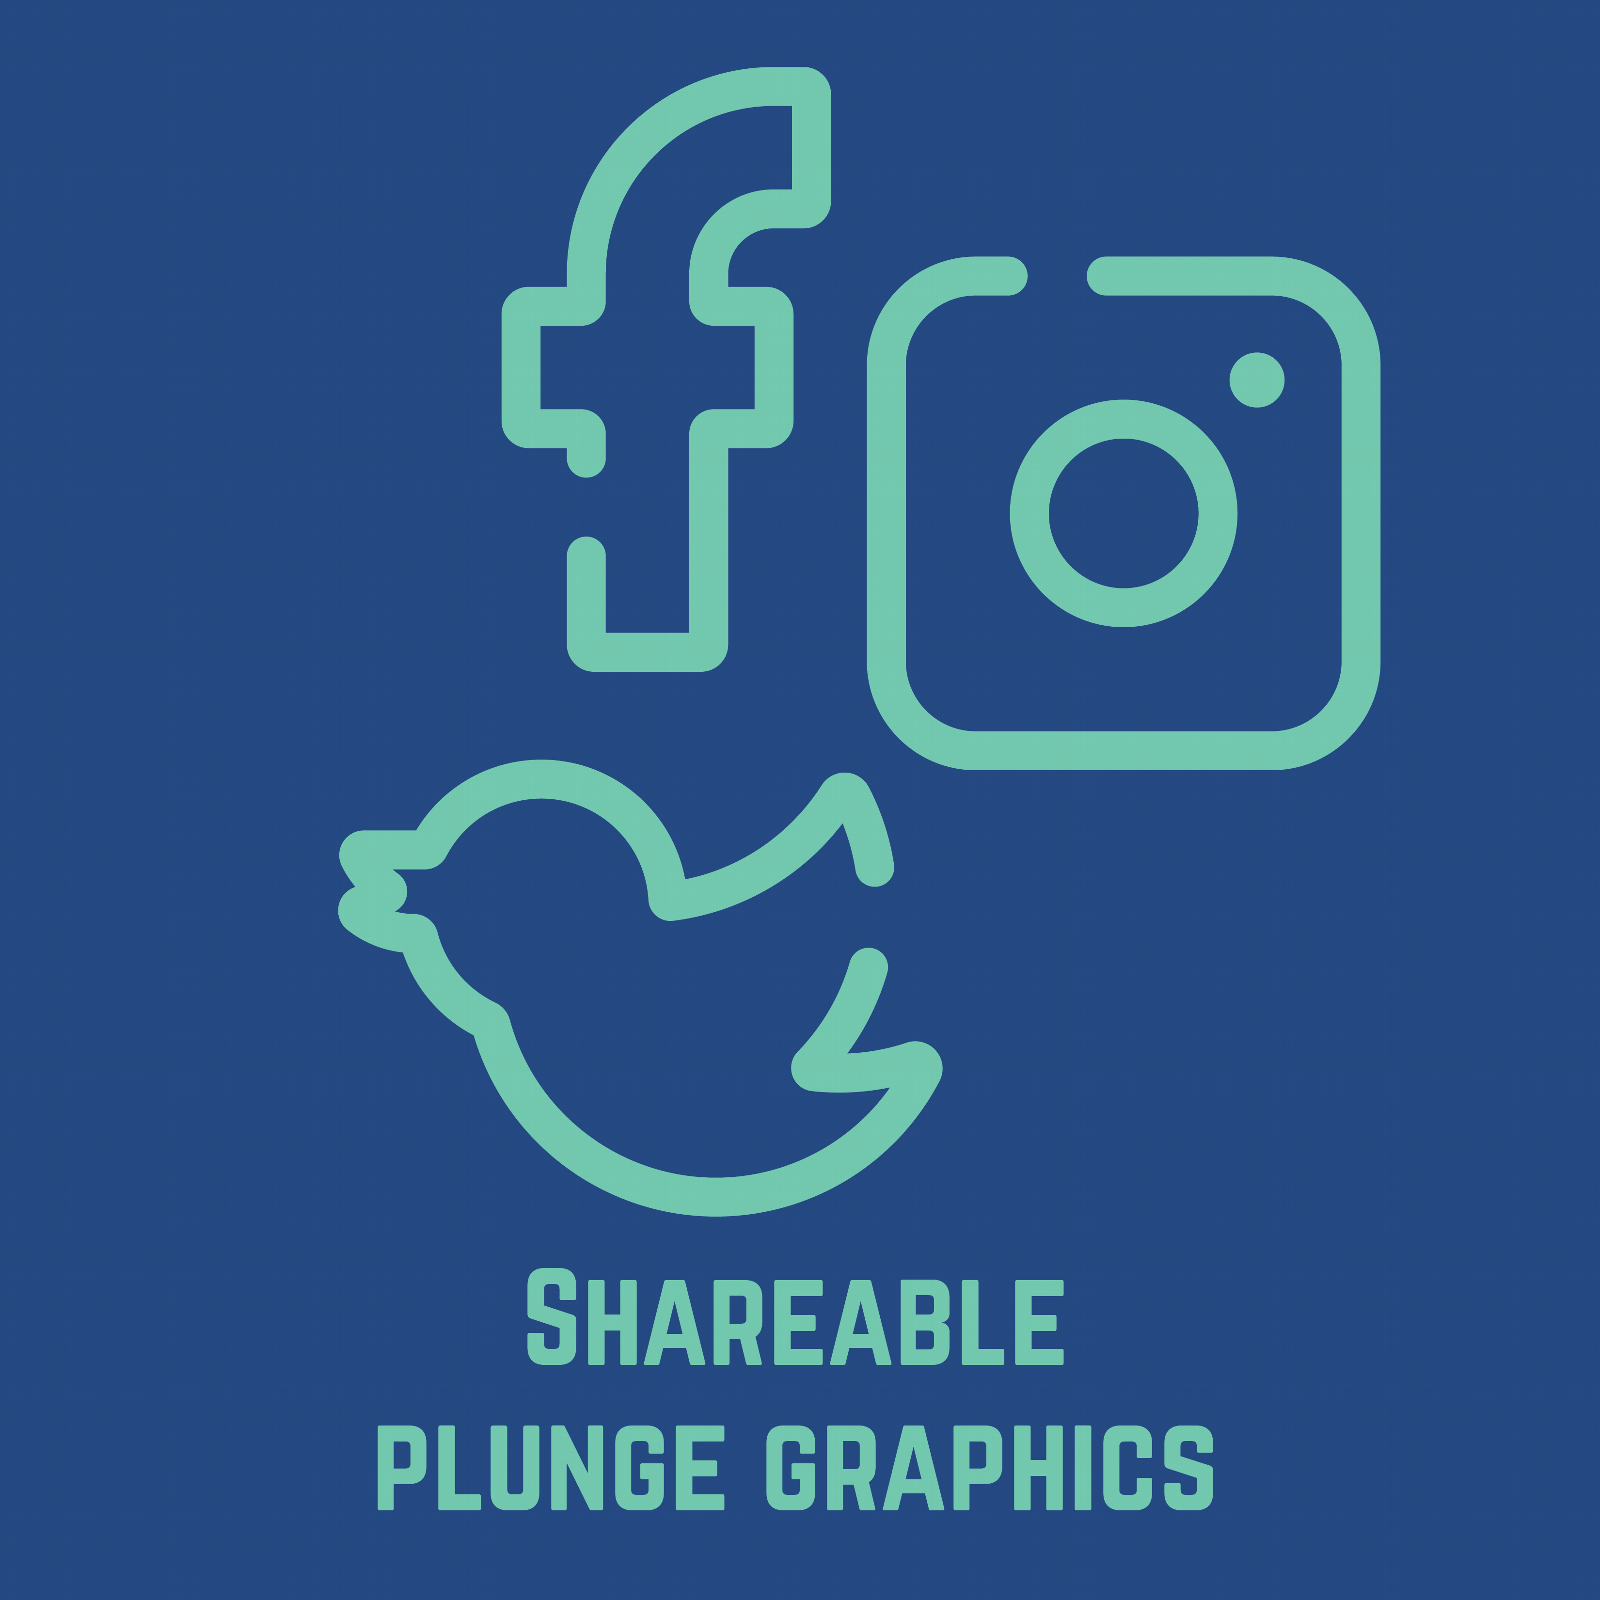 Shareable Plunge Graphics